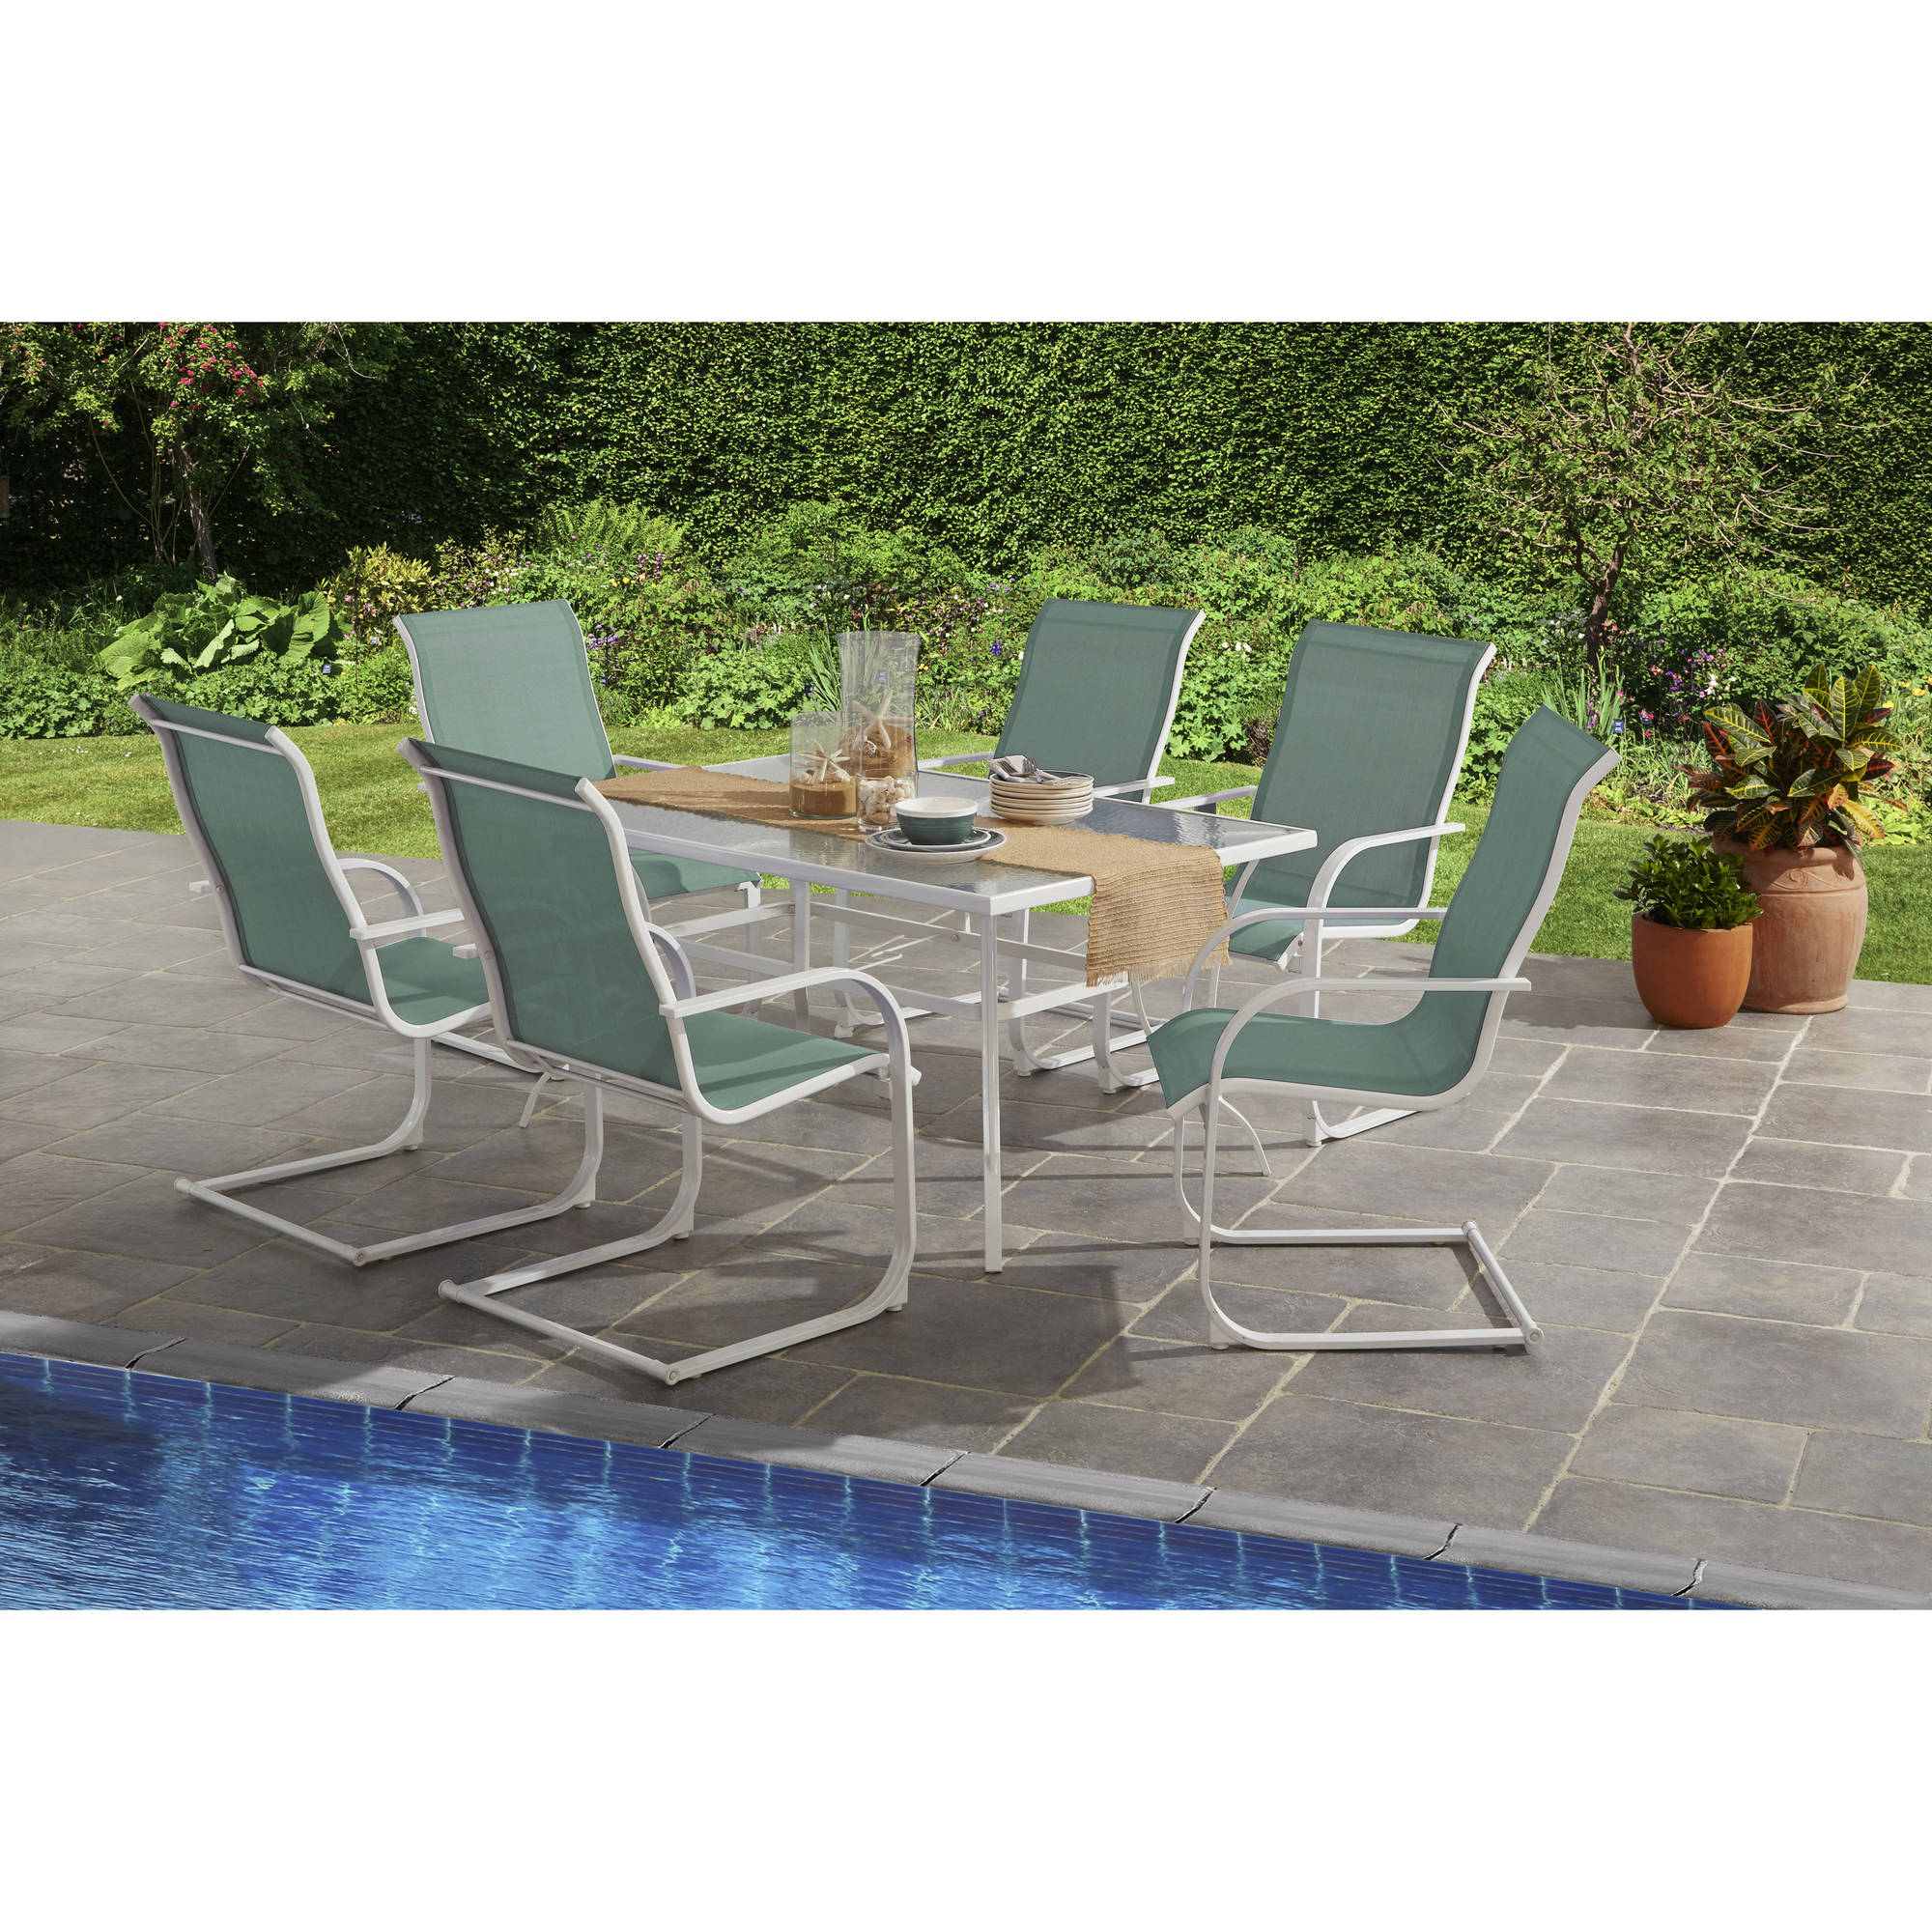 Mainstays Bristol Springs 7-Piece Dining Set, Aqua